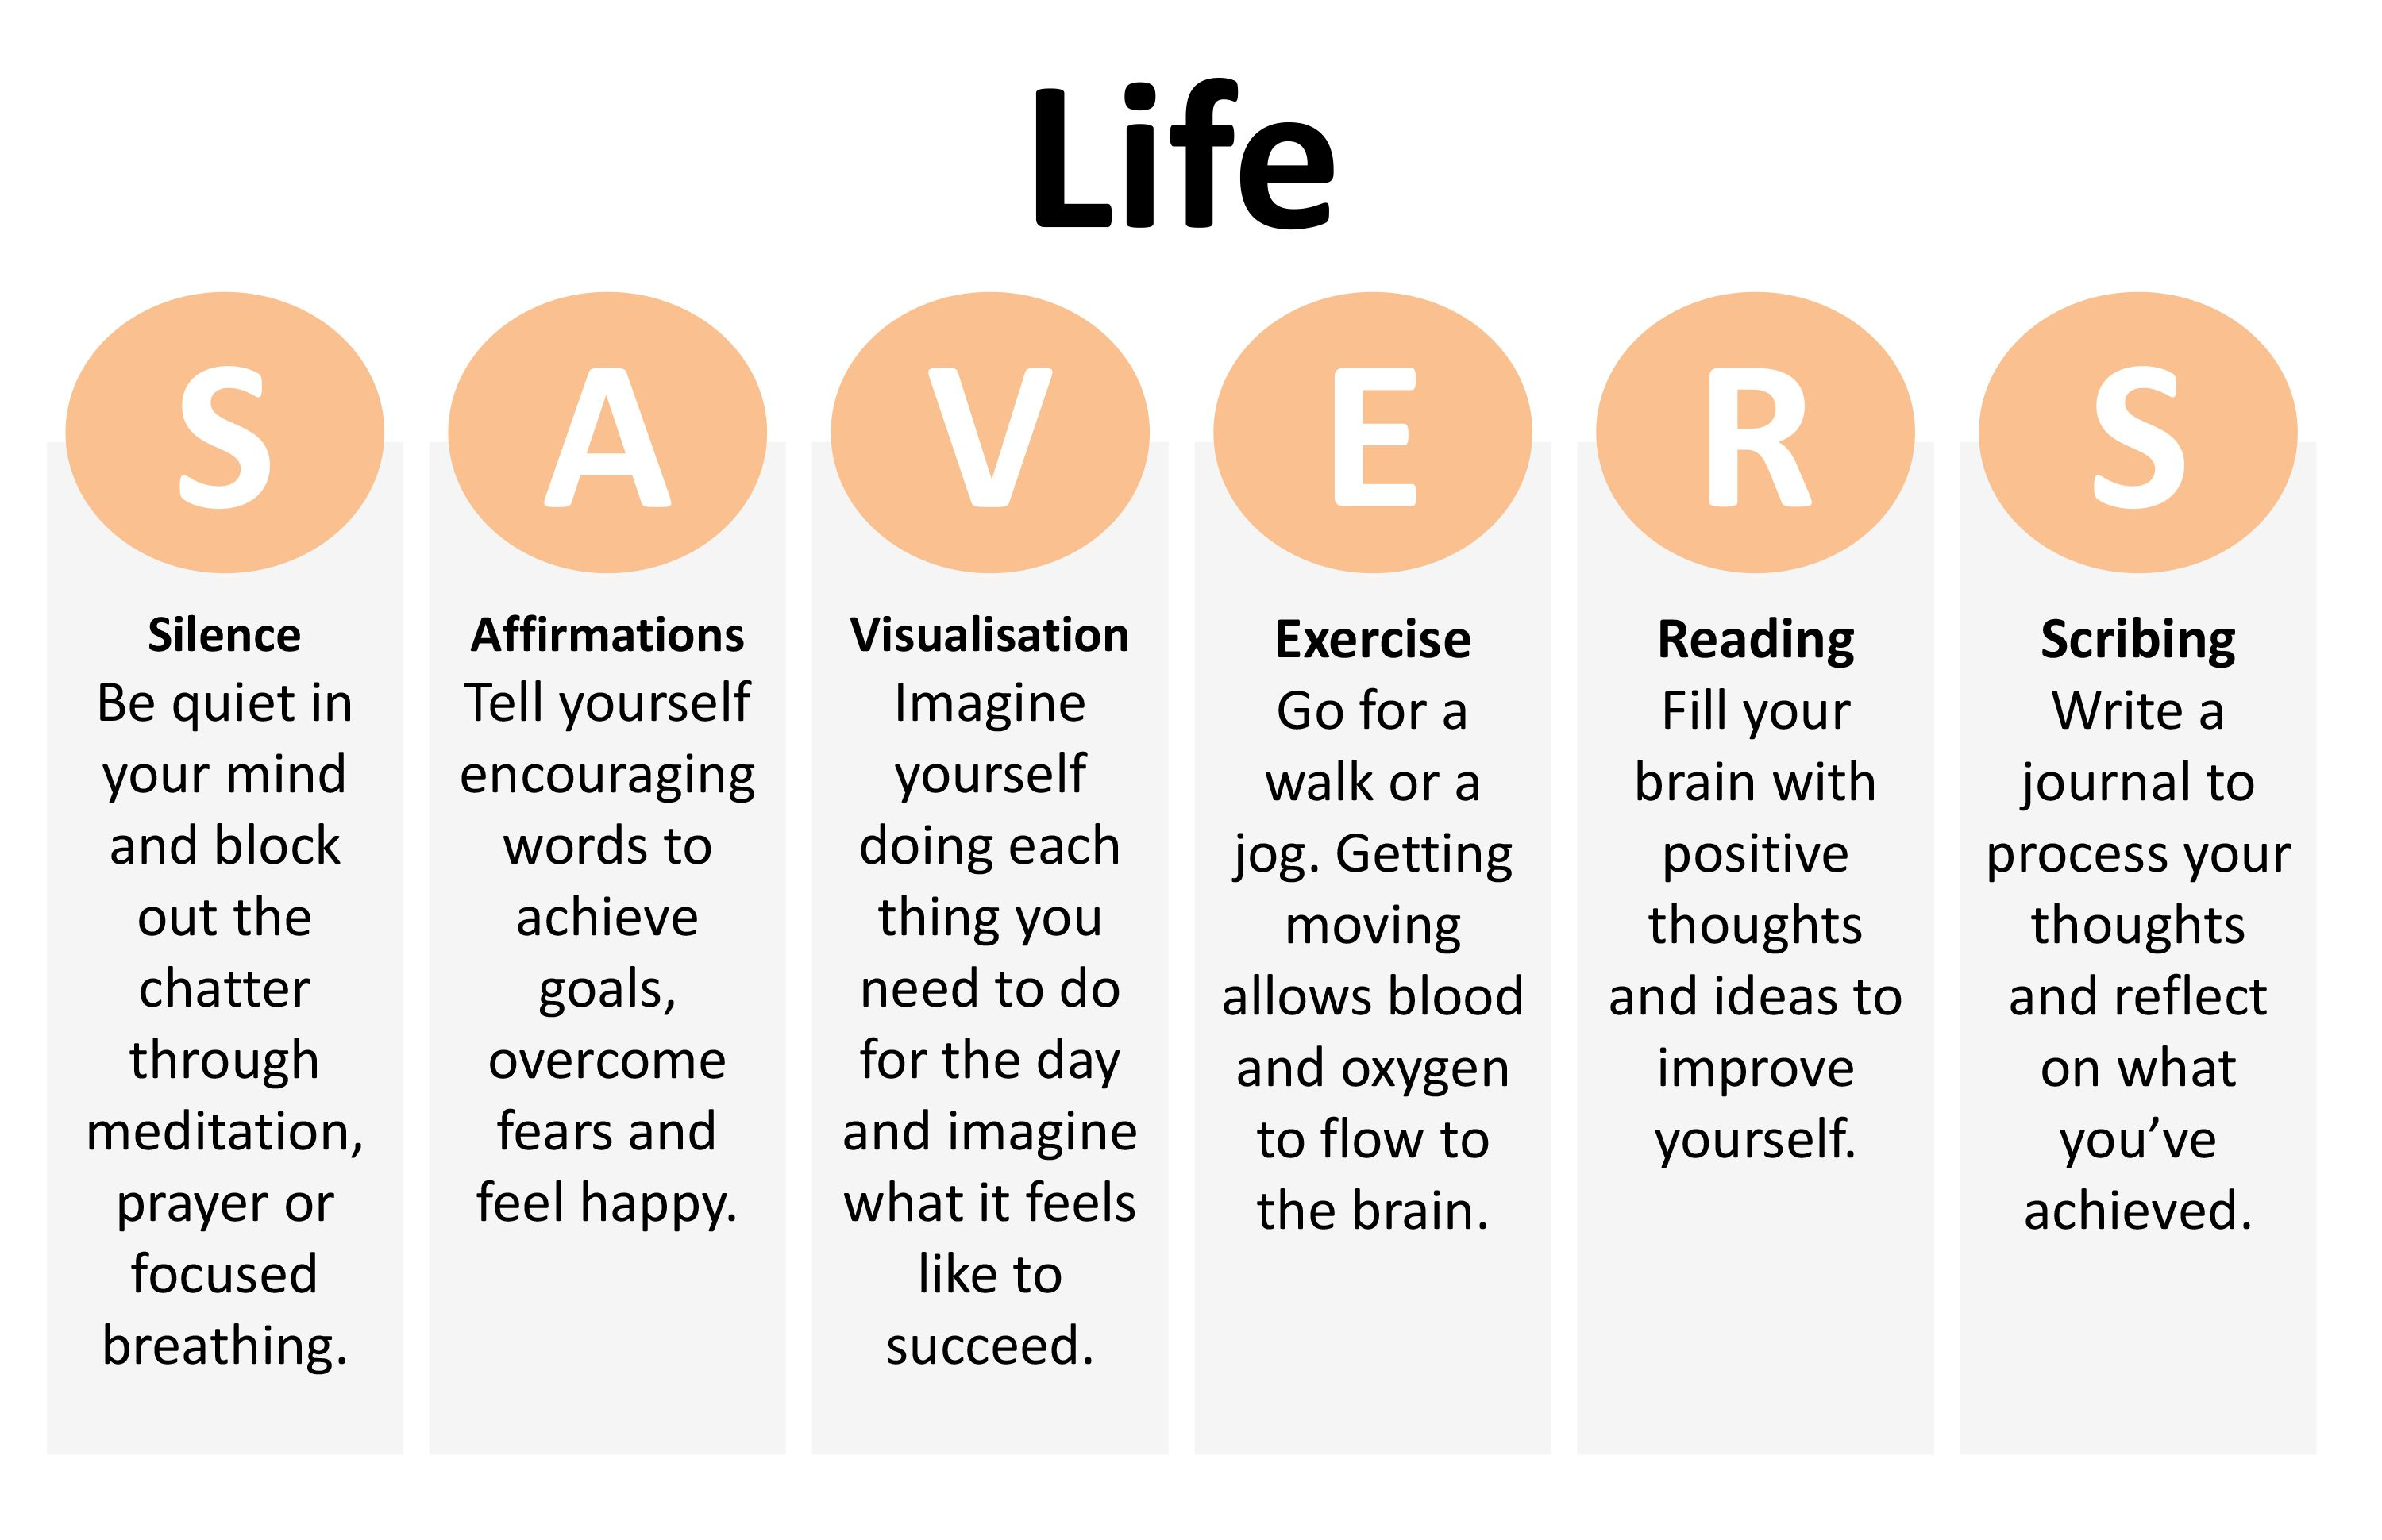 Life Savers infographic to bring structure to your morning routine #morningroutine